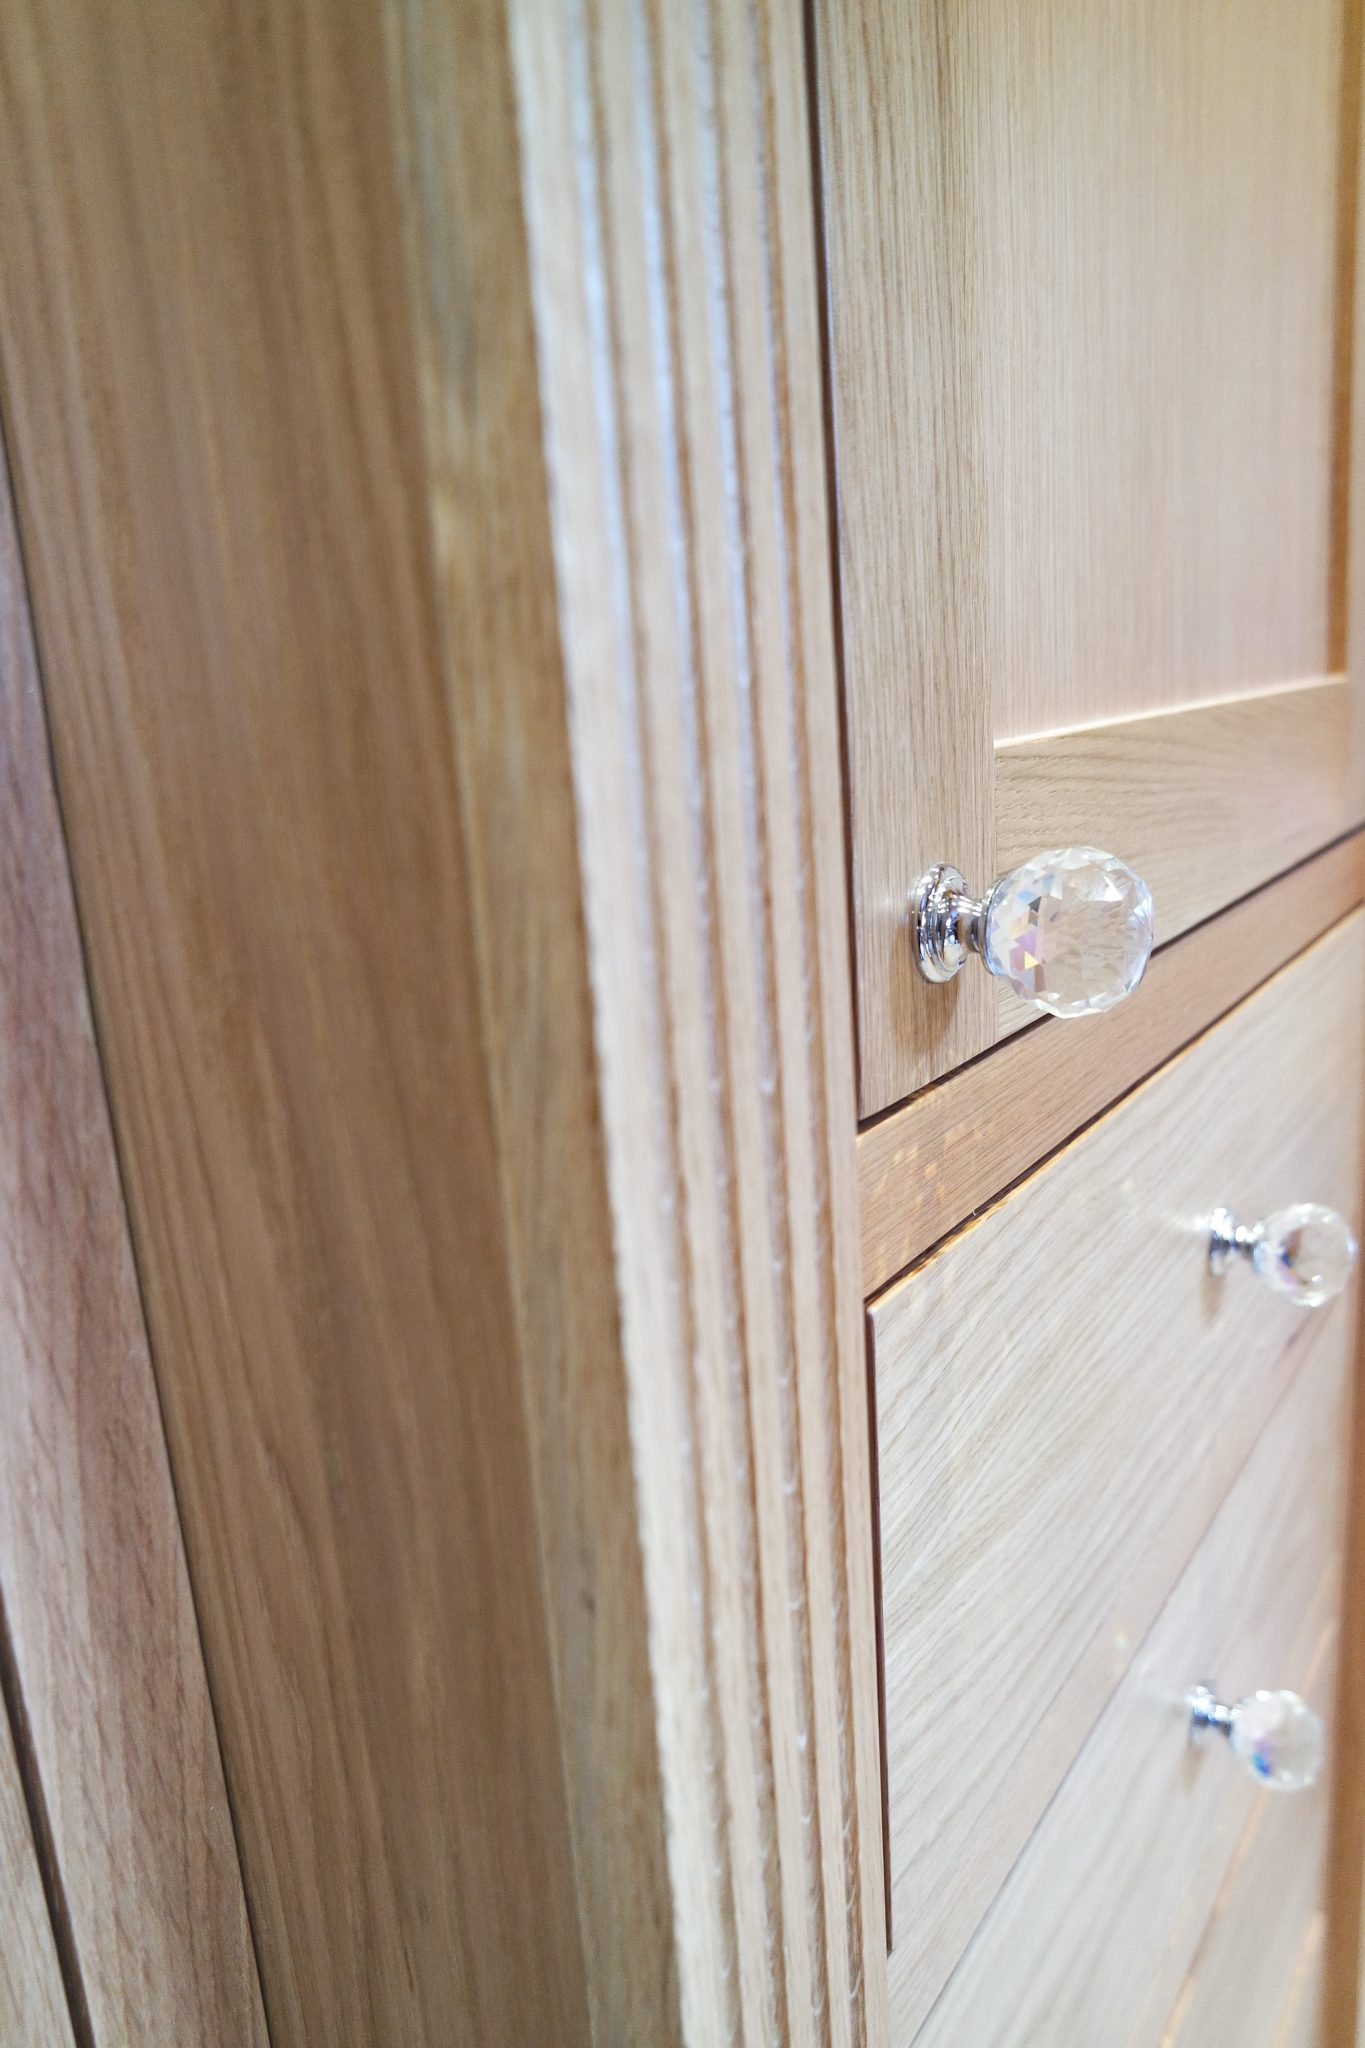 Fitted oak wardrobe with swarovski crystal knobs